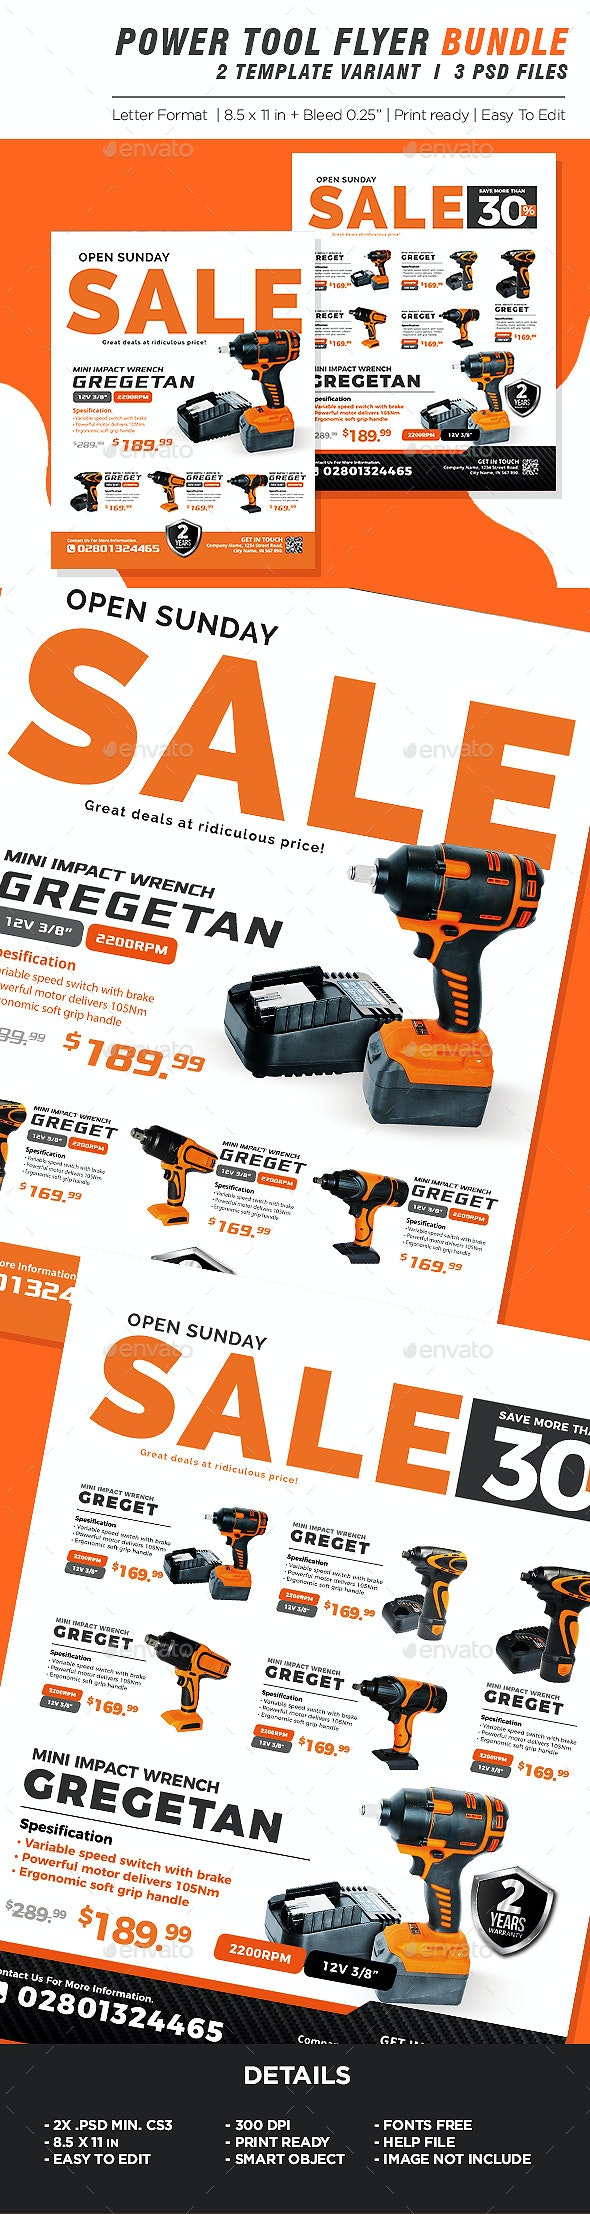 Power Tools Catalog Product Flyer Bundle - Corporate Flyers